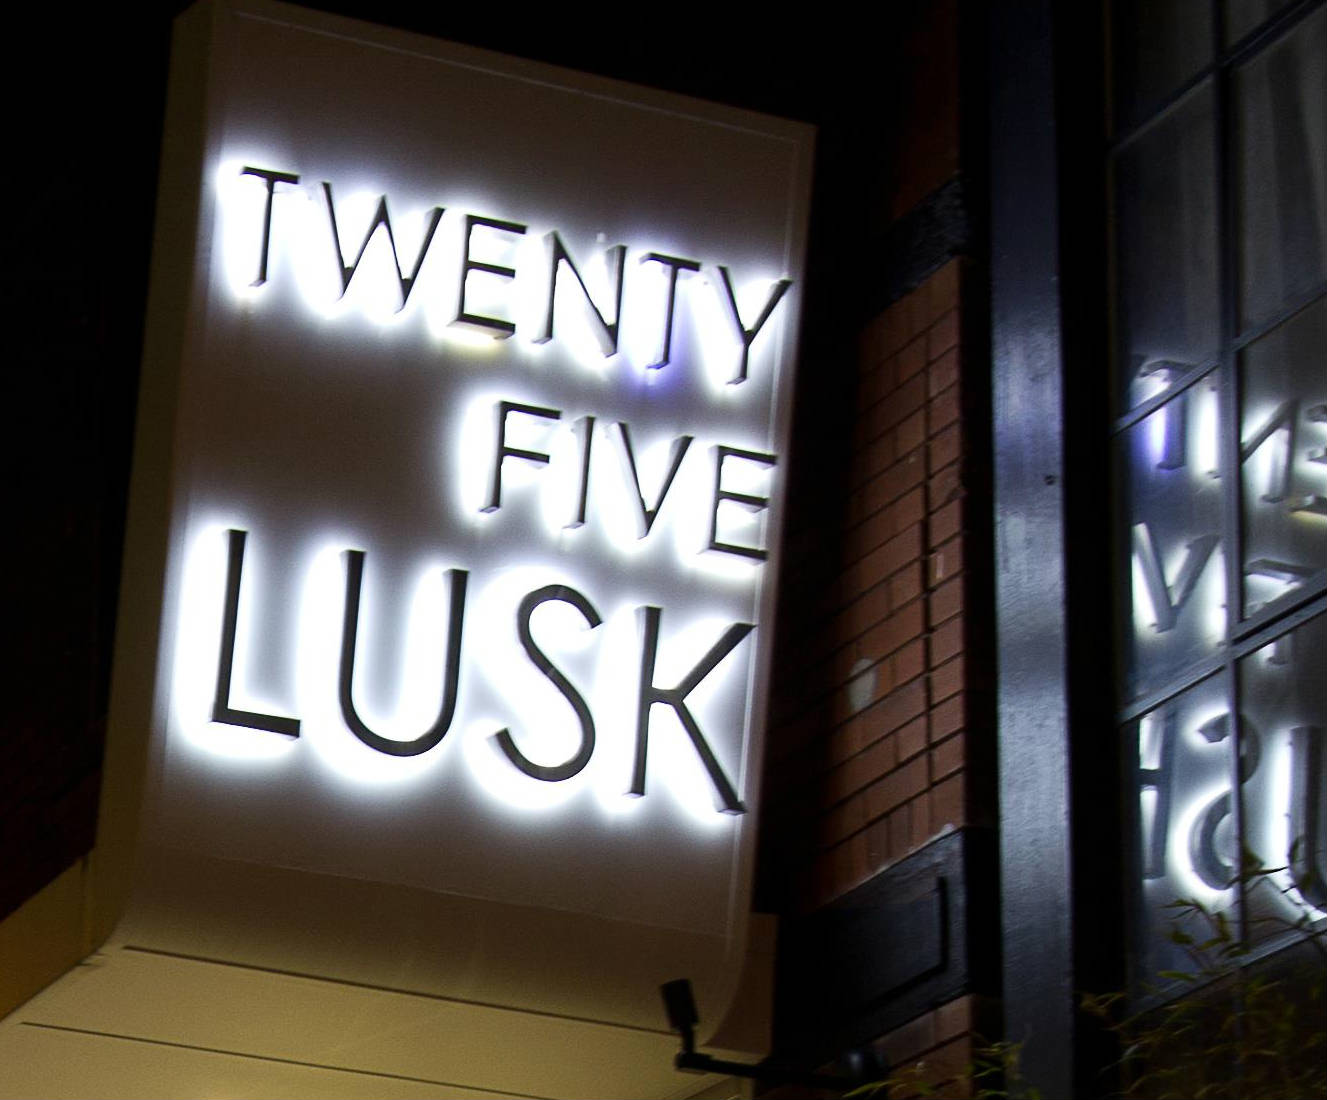 Twenty Five Lusk photo